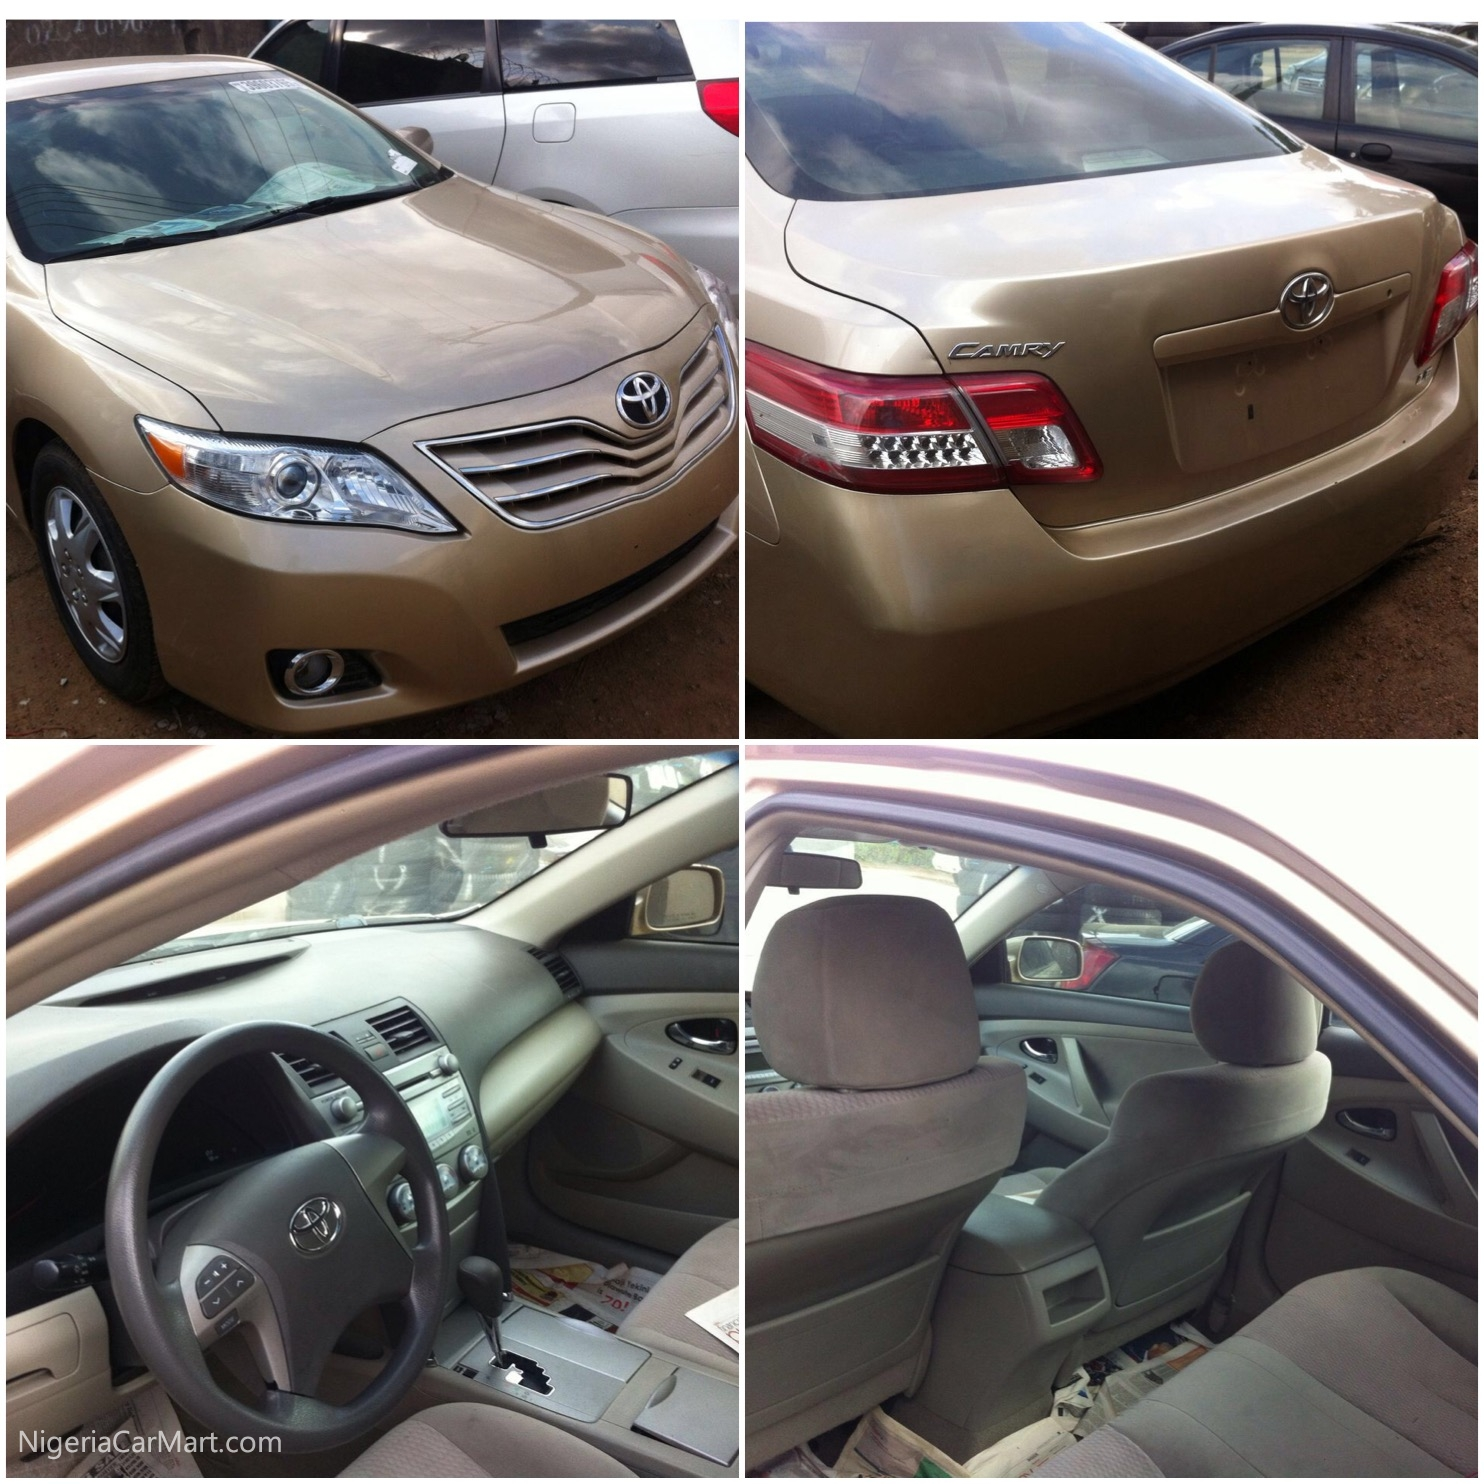 2010 Toyota Camry For Sale: 2010 Toyota Camry LE Used Car For Sale In Lagos Nigeria